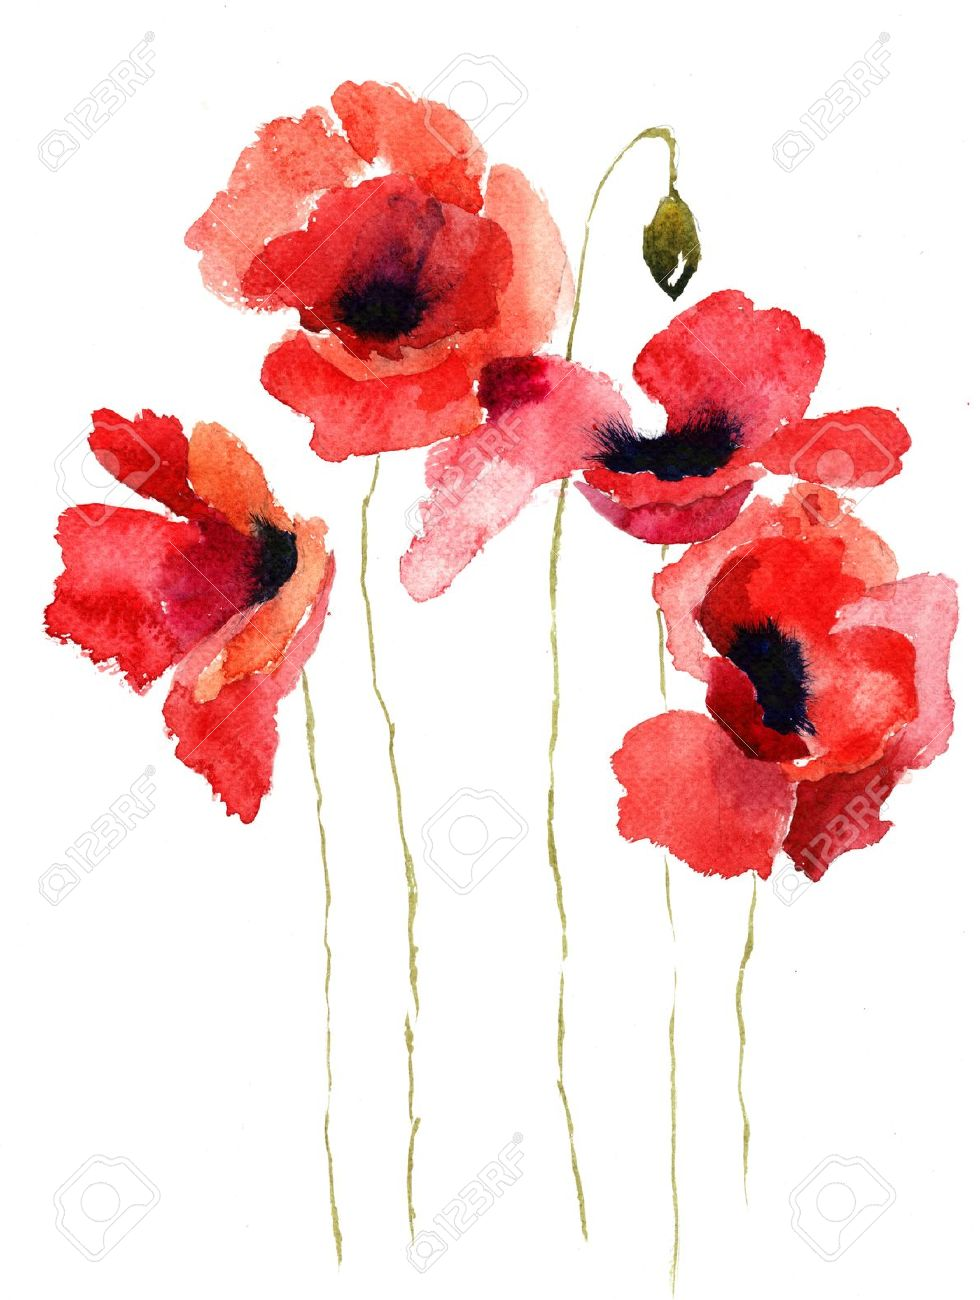 Stylized Poppy Flowers Illustration Stock Photo Picture And Royalty